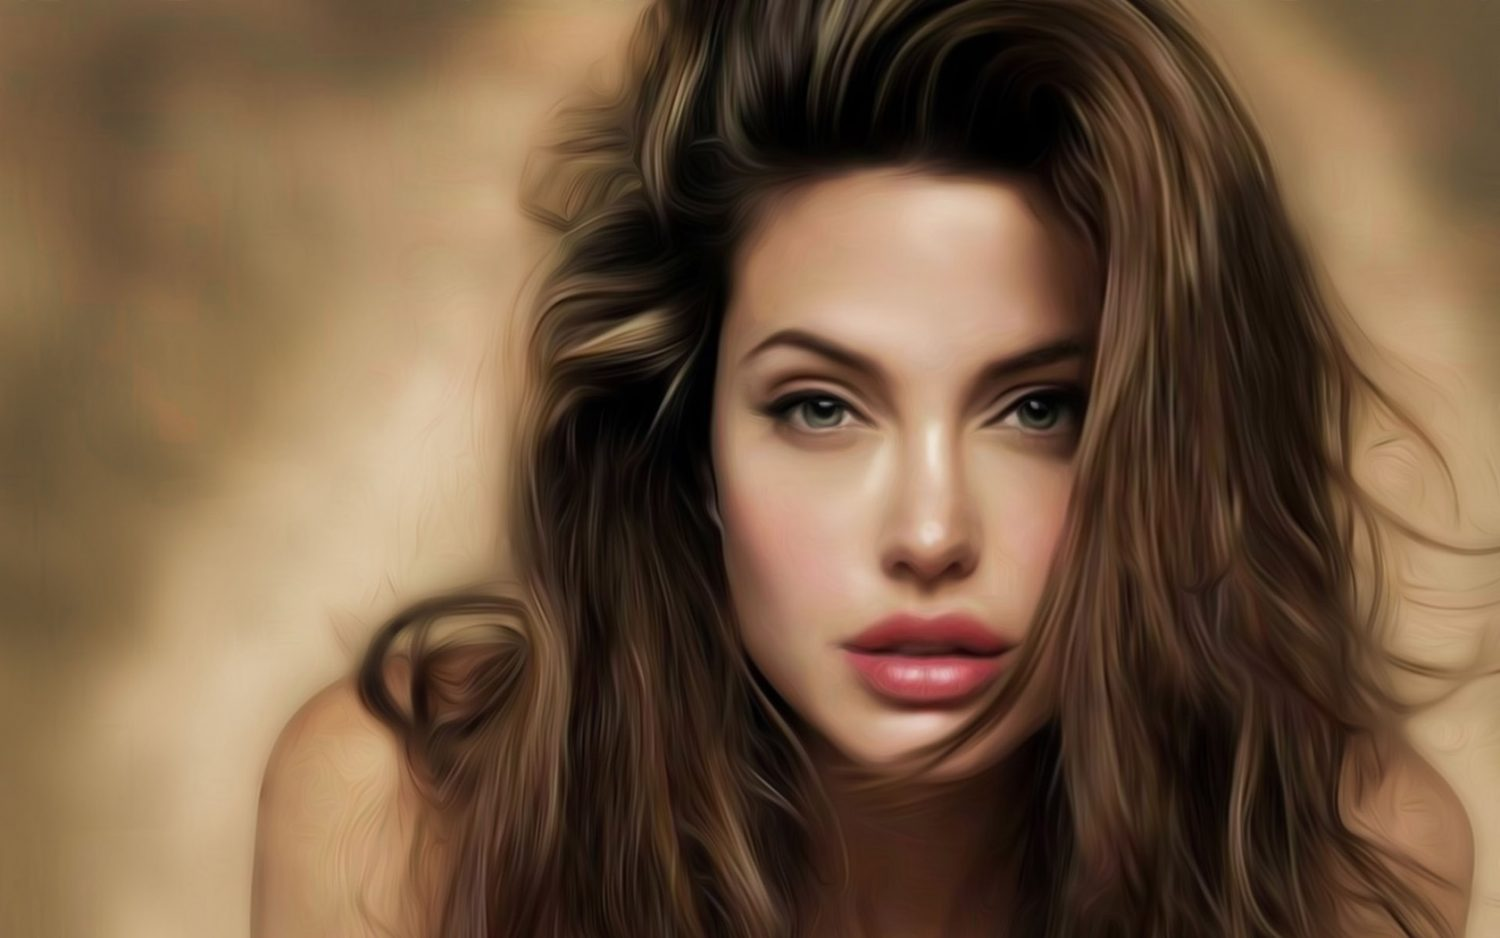 angelina-jolie-drawing-18573